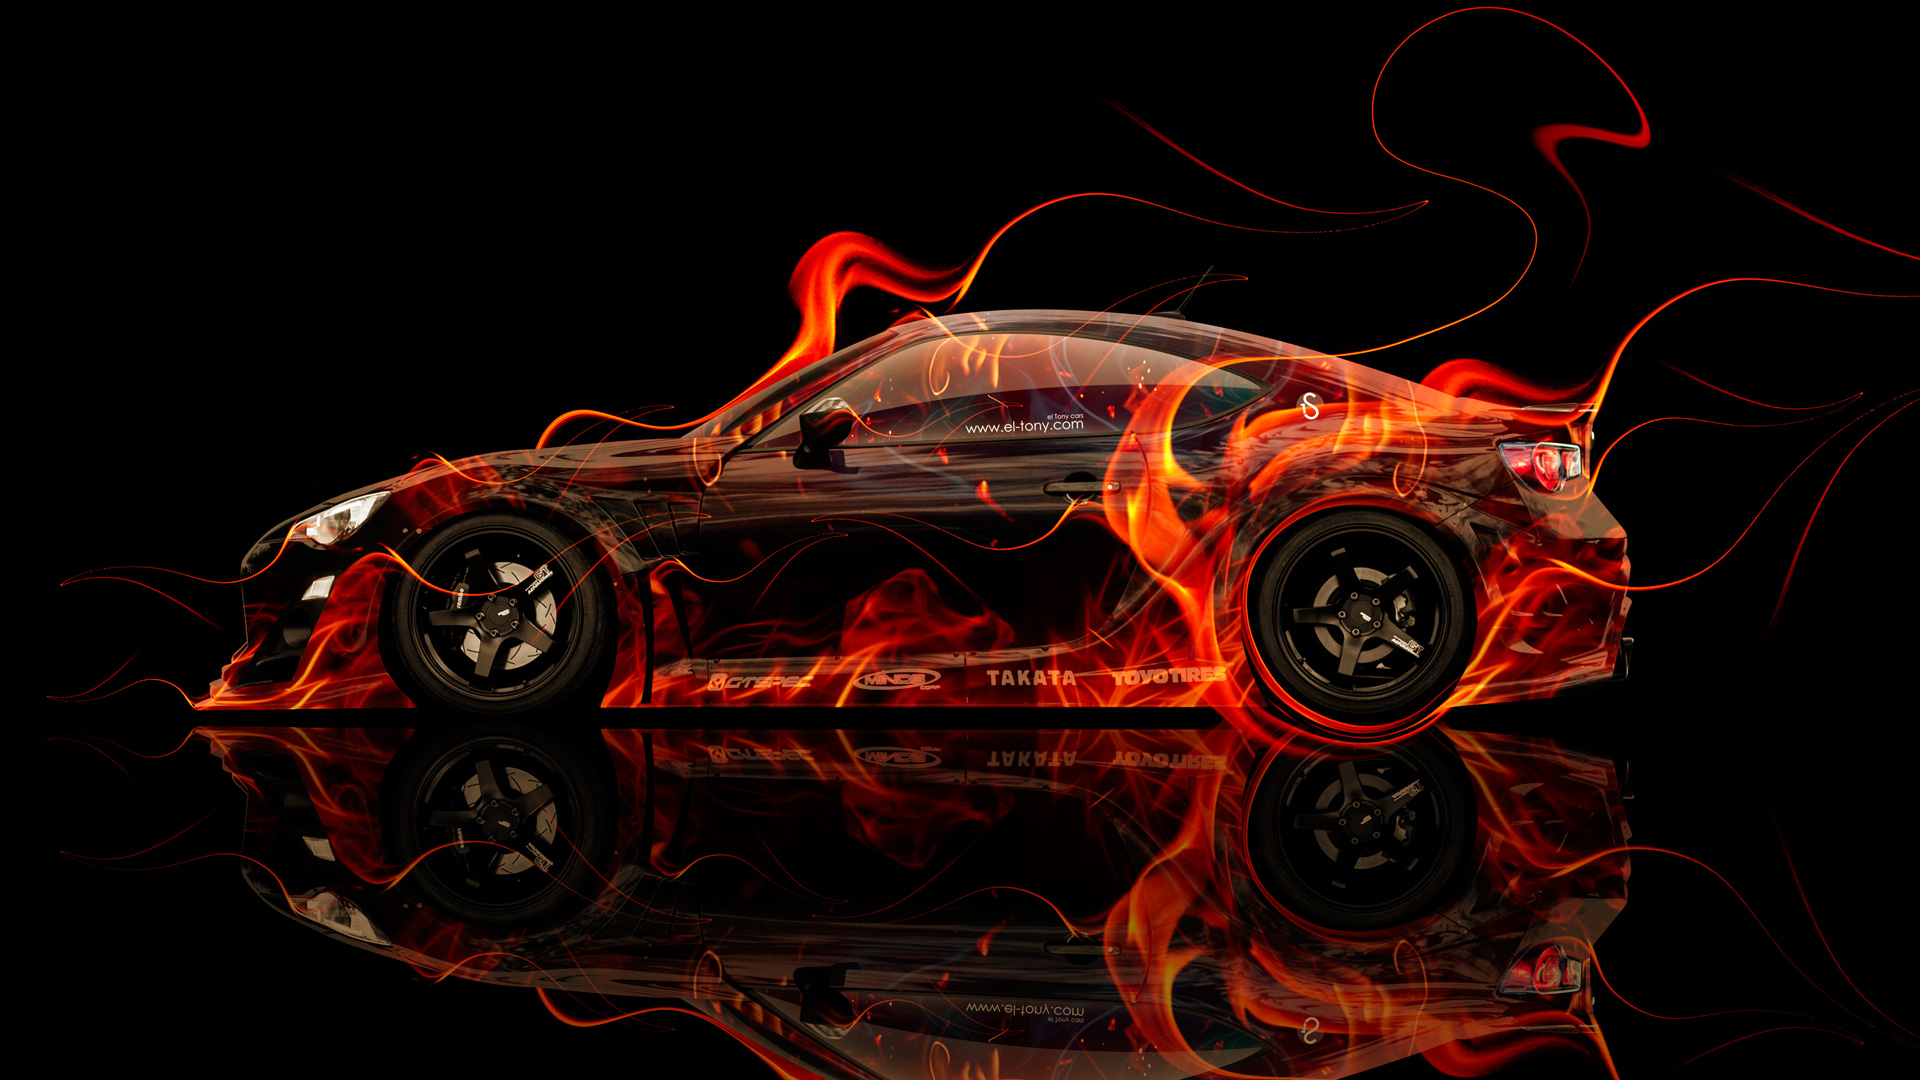 Desktop Machine Cars Lamborghini Wallpapers Toyota Gt86 Tuning Side Fire Abstract Car 2014 El Tony